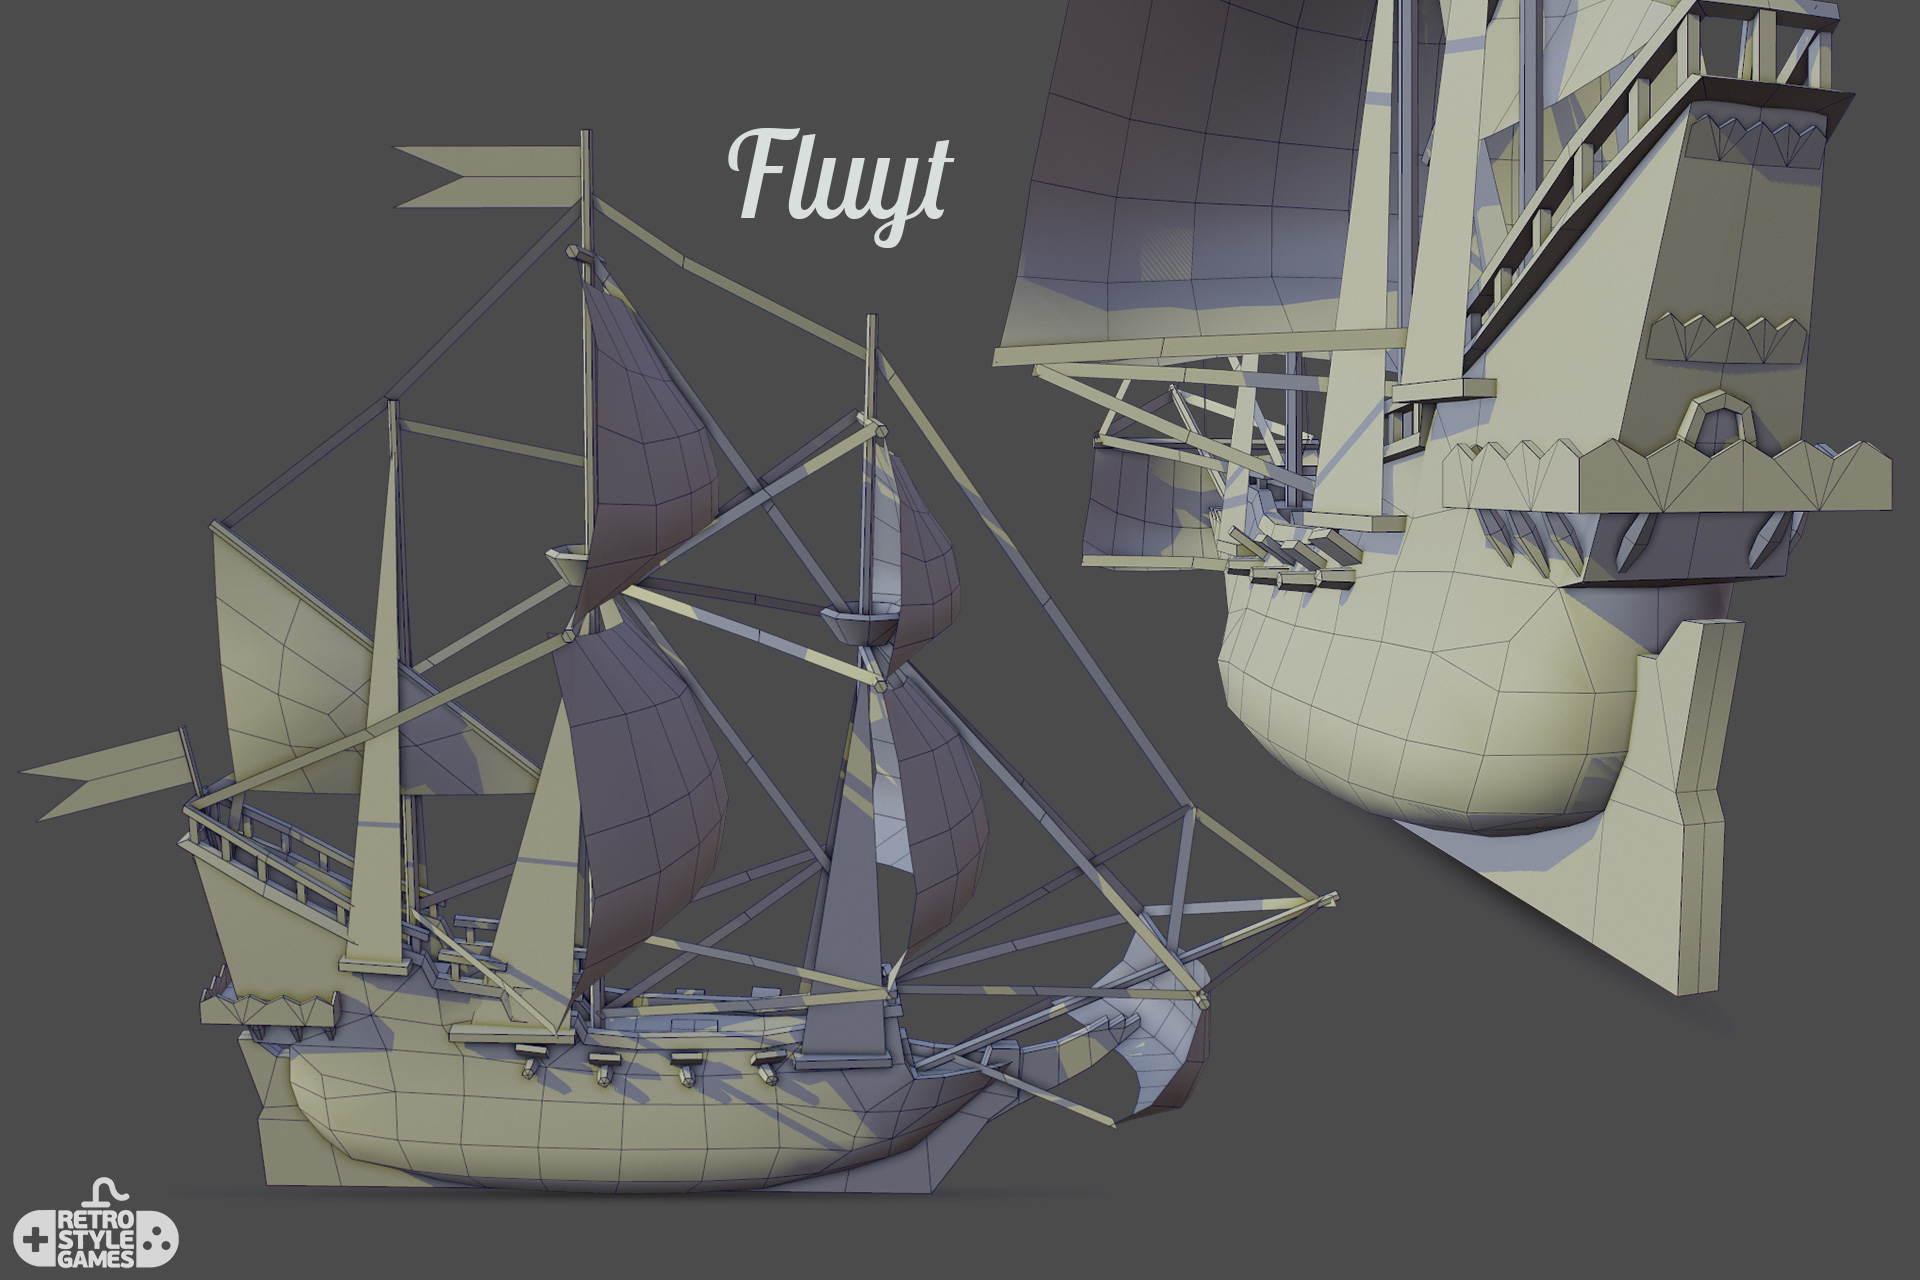 low poly pirate ship FLUYT grid